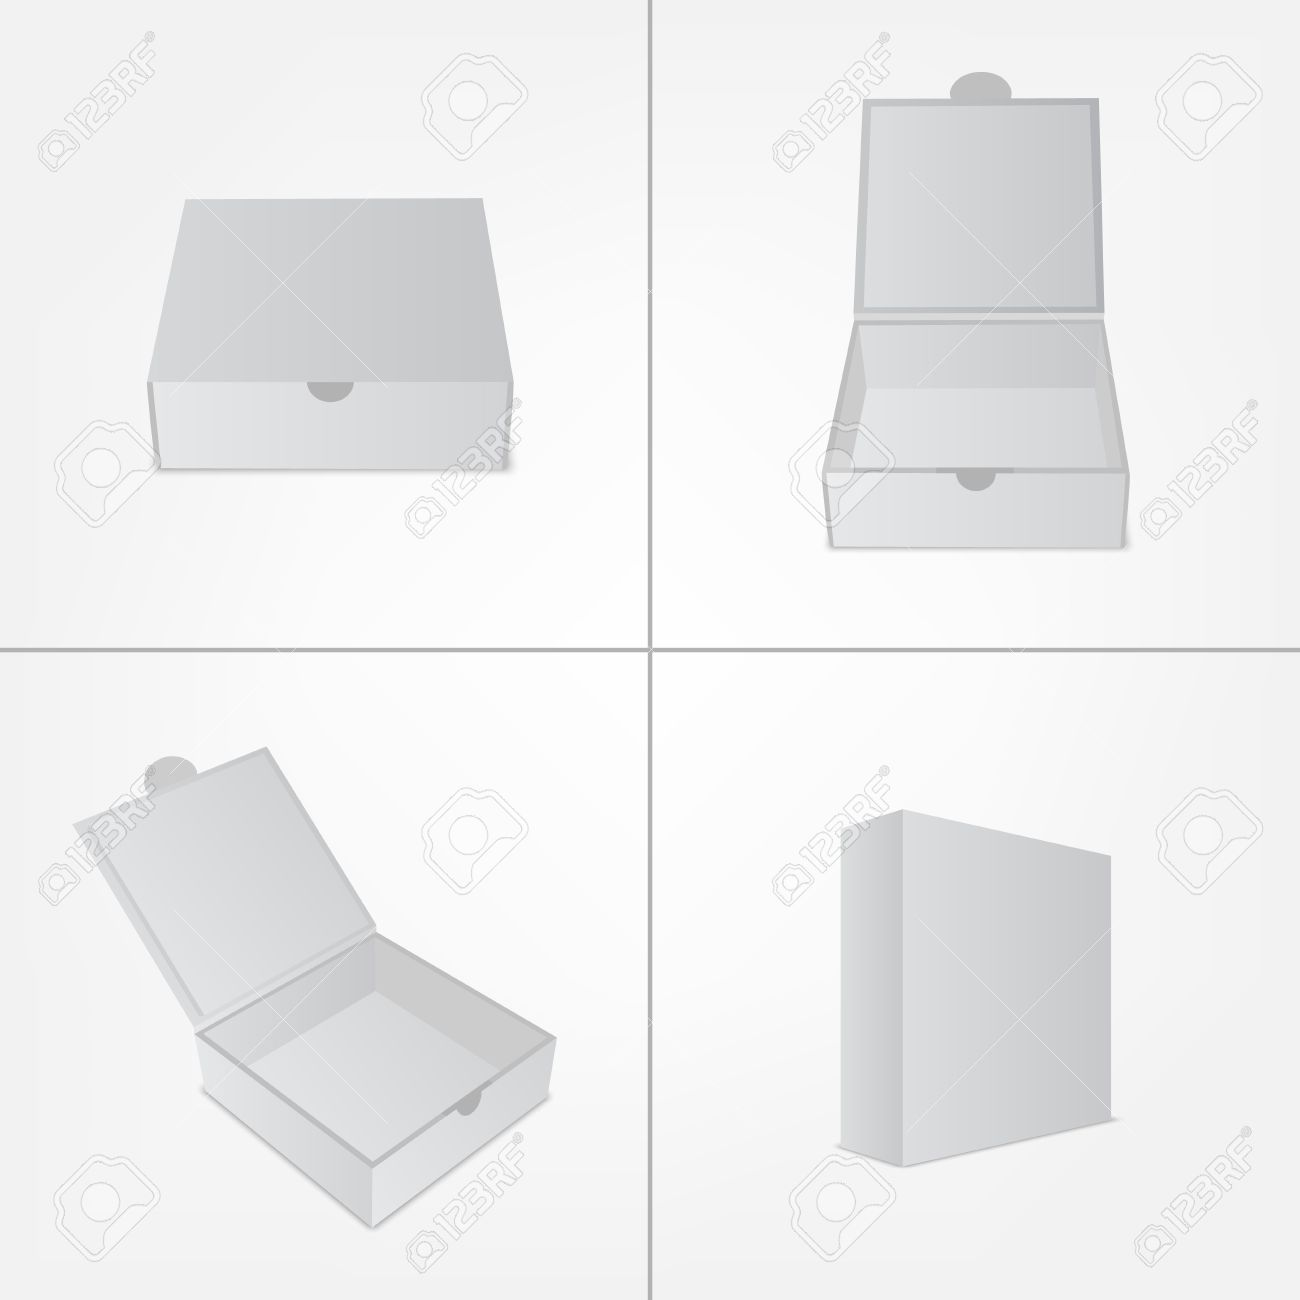 Set of packaging design box mockup. Gray square shape in four views. Mock-up template ready for your branding design. Vector EPS10 illustration. - 46526926